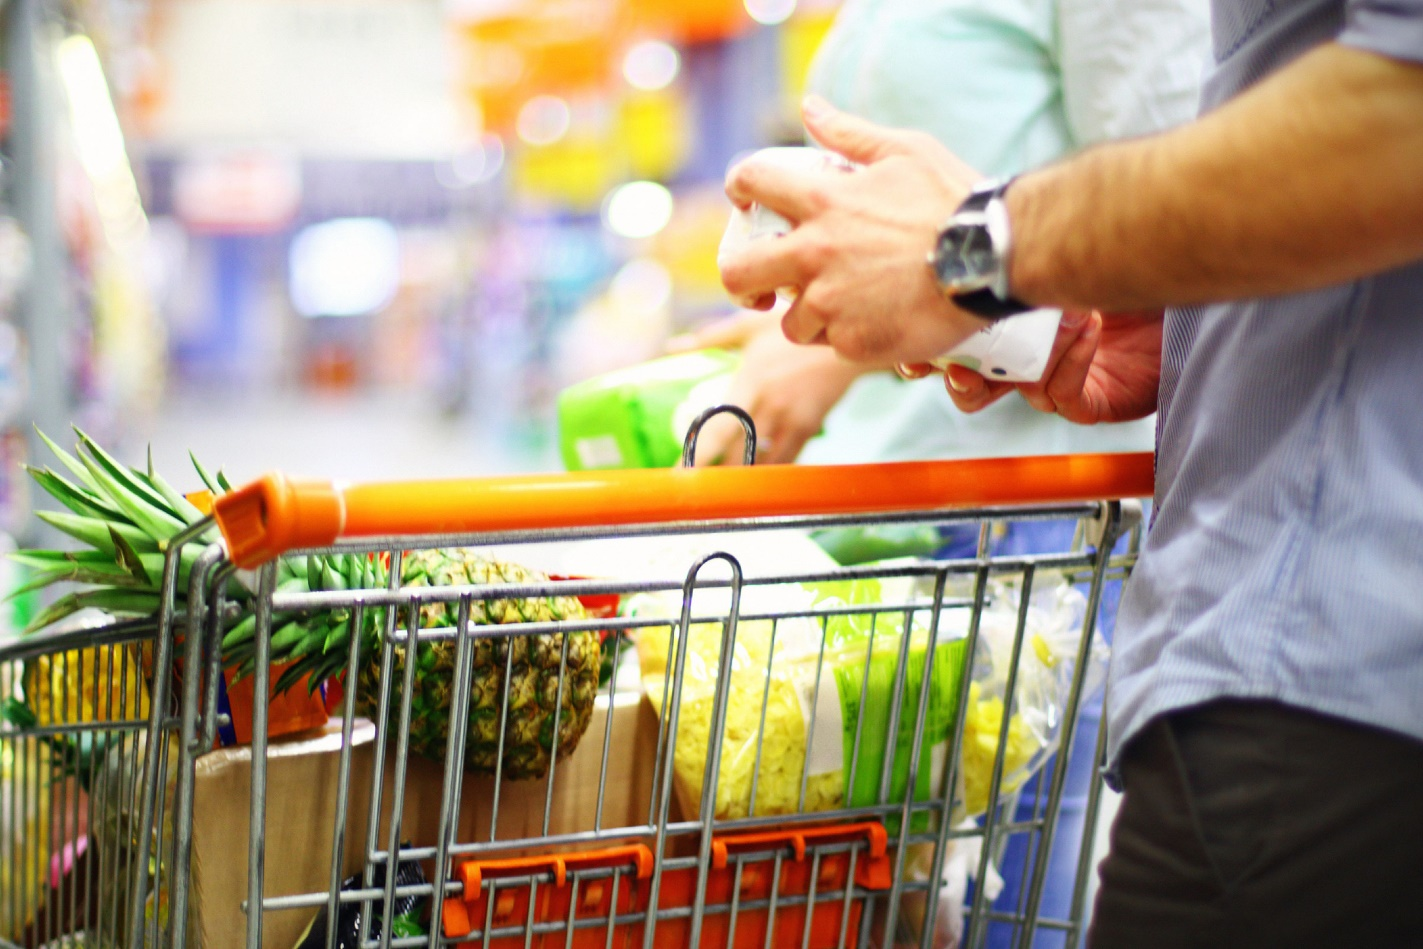 Limit the grocery shopping budget to Save Money